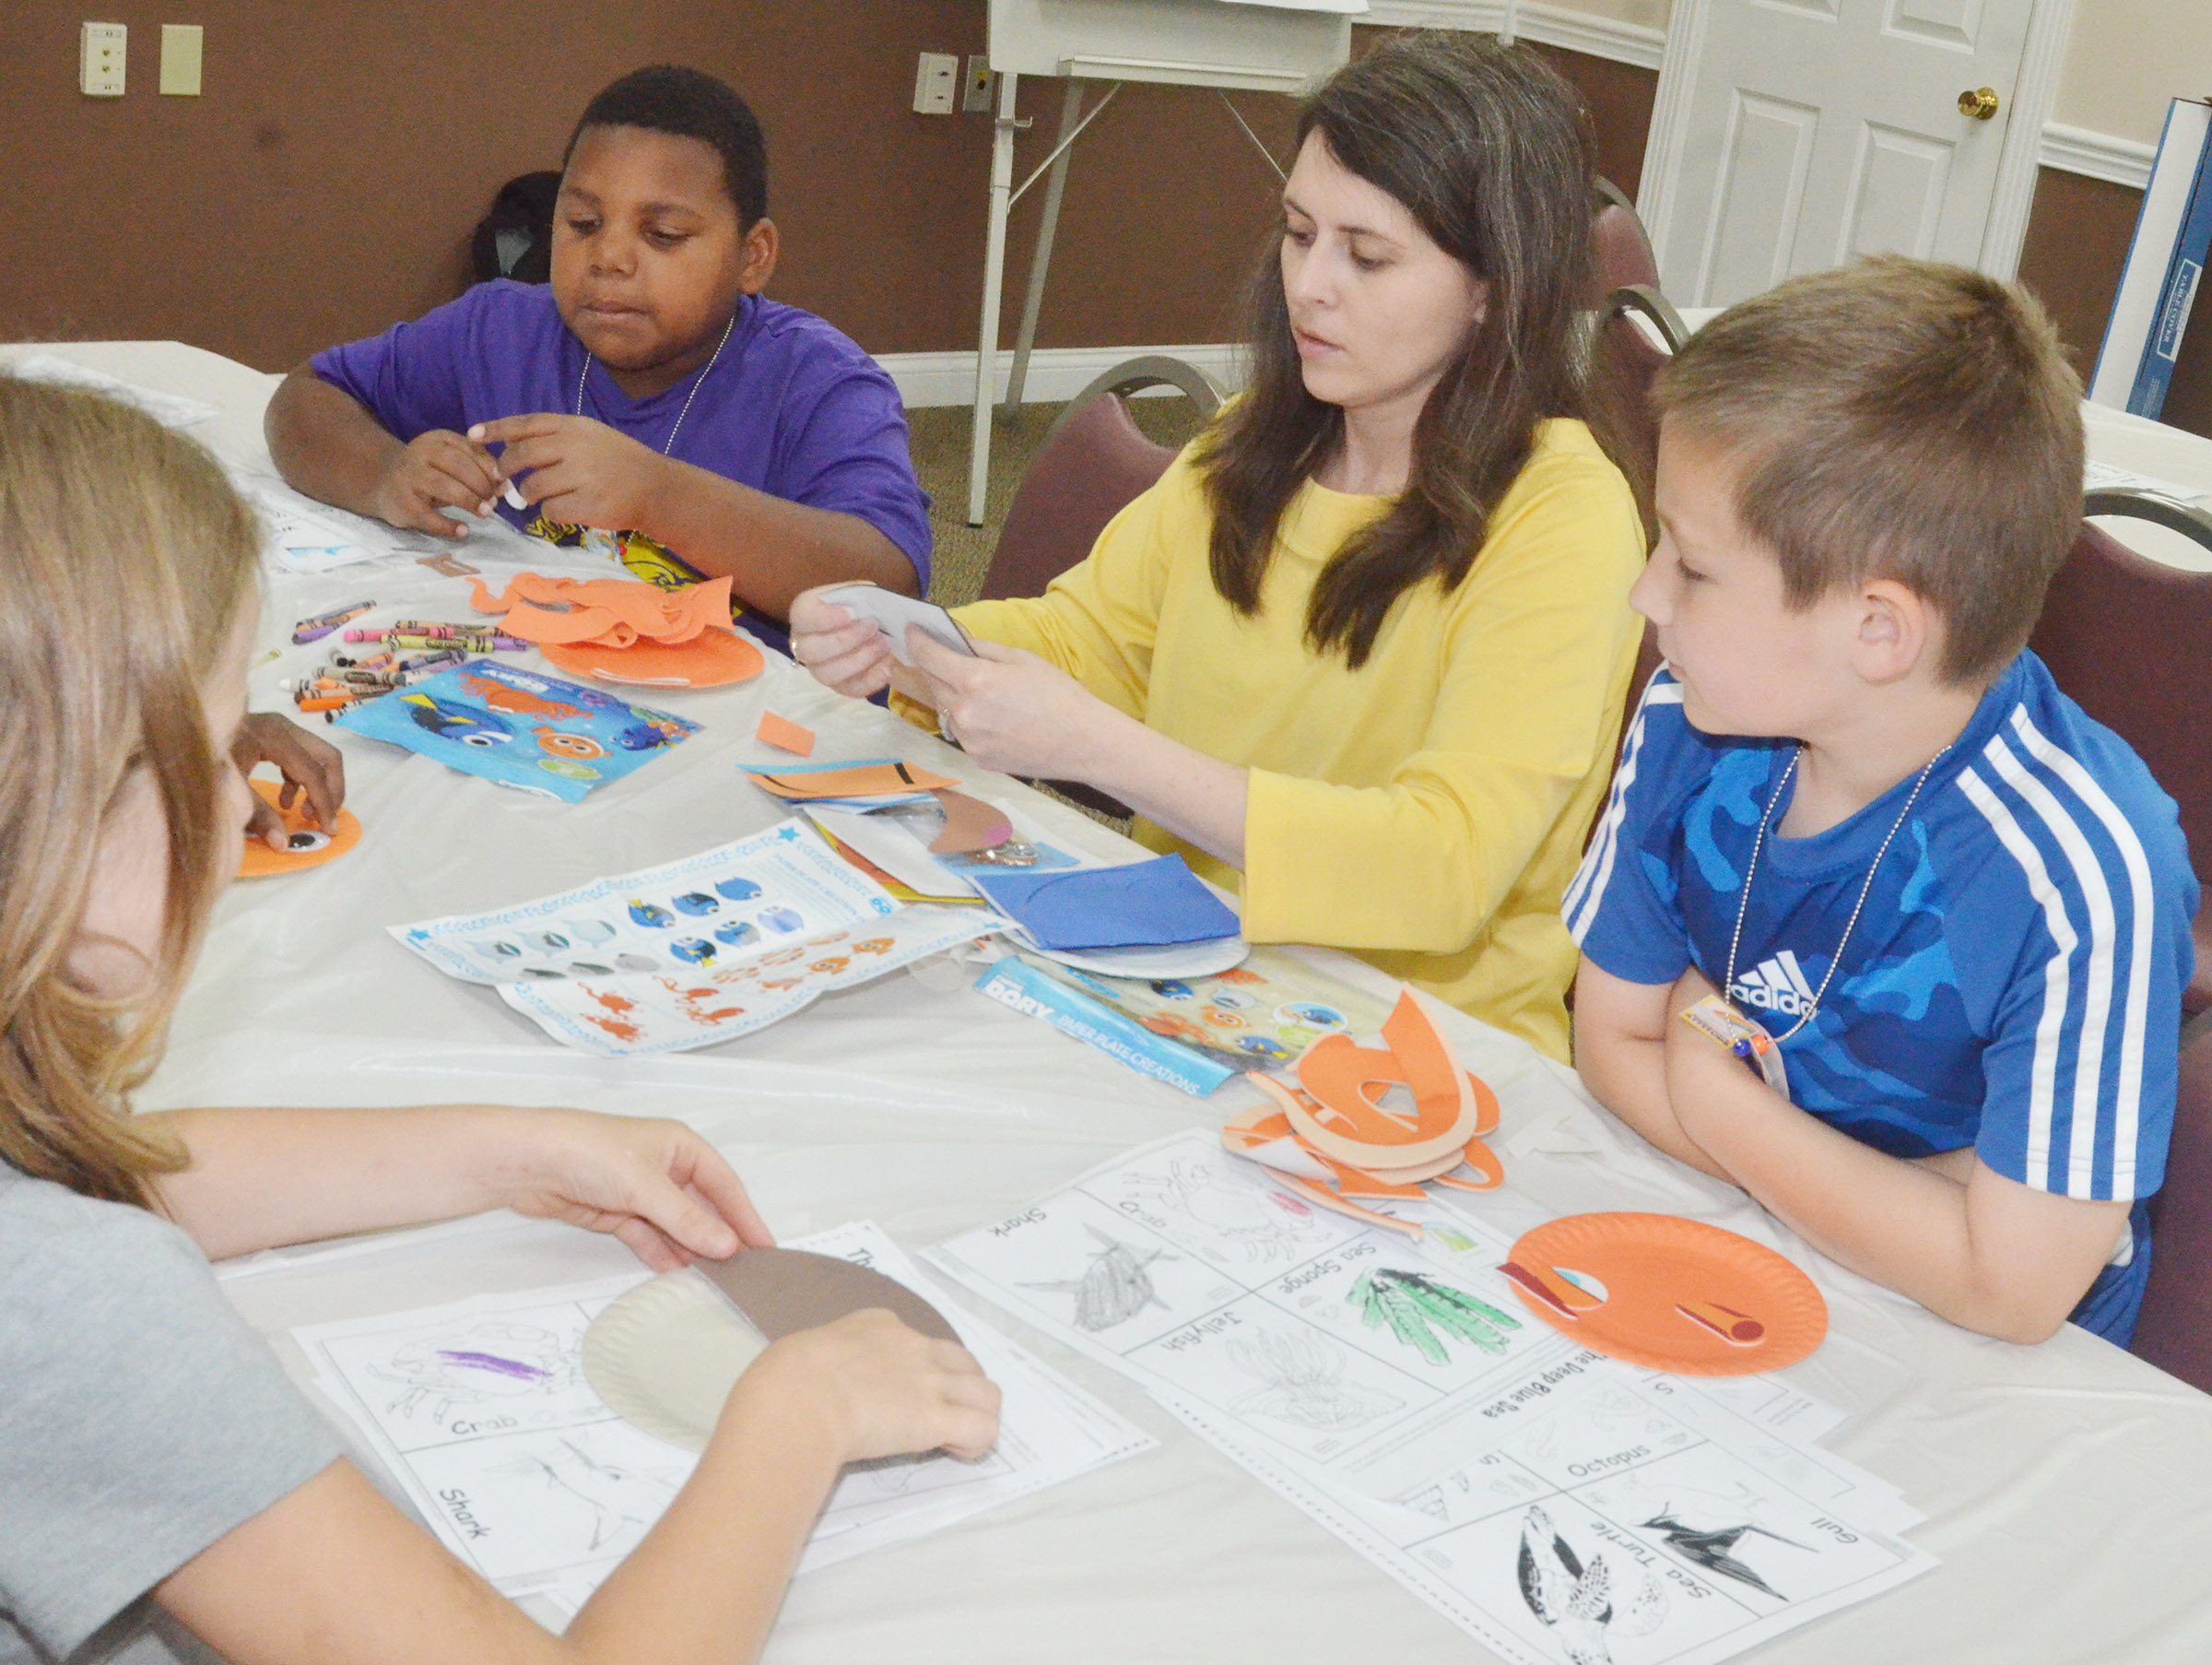 Amanda Sublett, extension agent for 4-H youth development at Taylor County Extension Office, helps CES Wings Express students make ocean animals out of paper plates. At left is third-grader Malikiah Spurling and at right is third-grader Grayson Dooley.